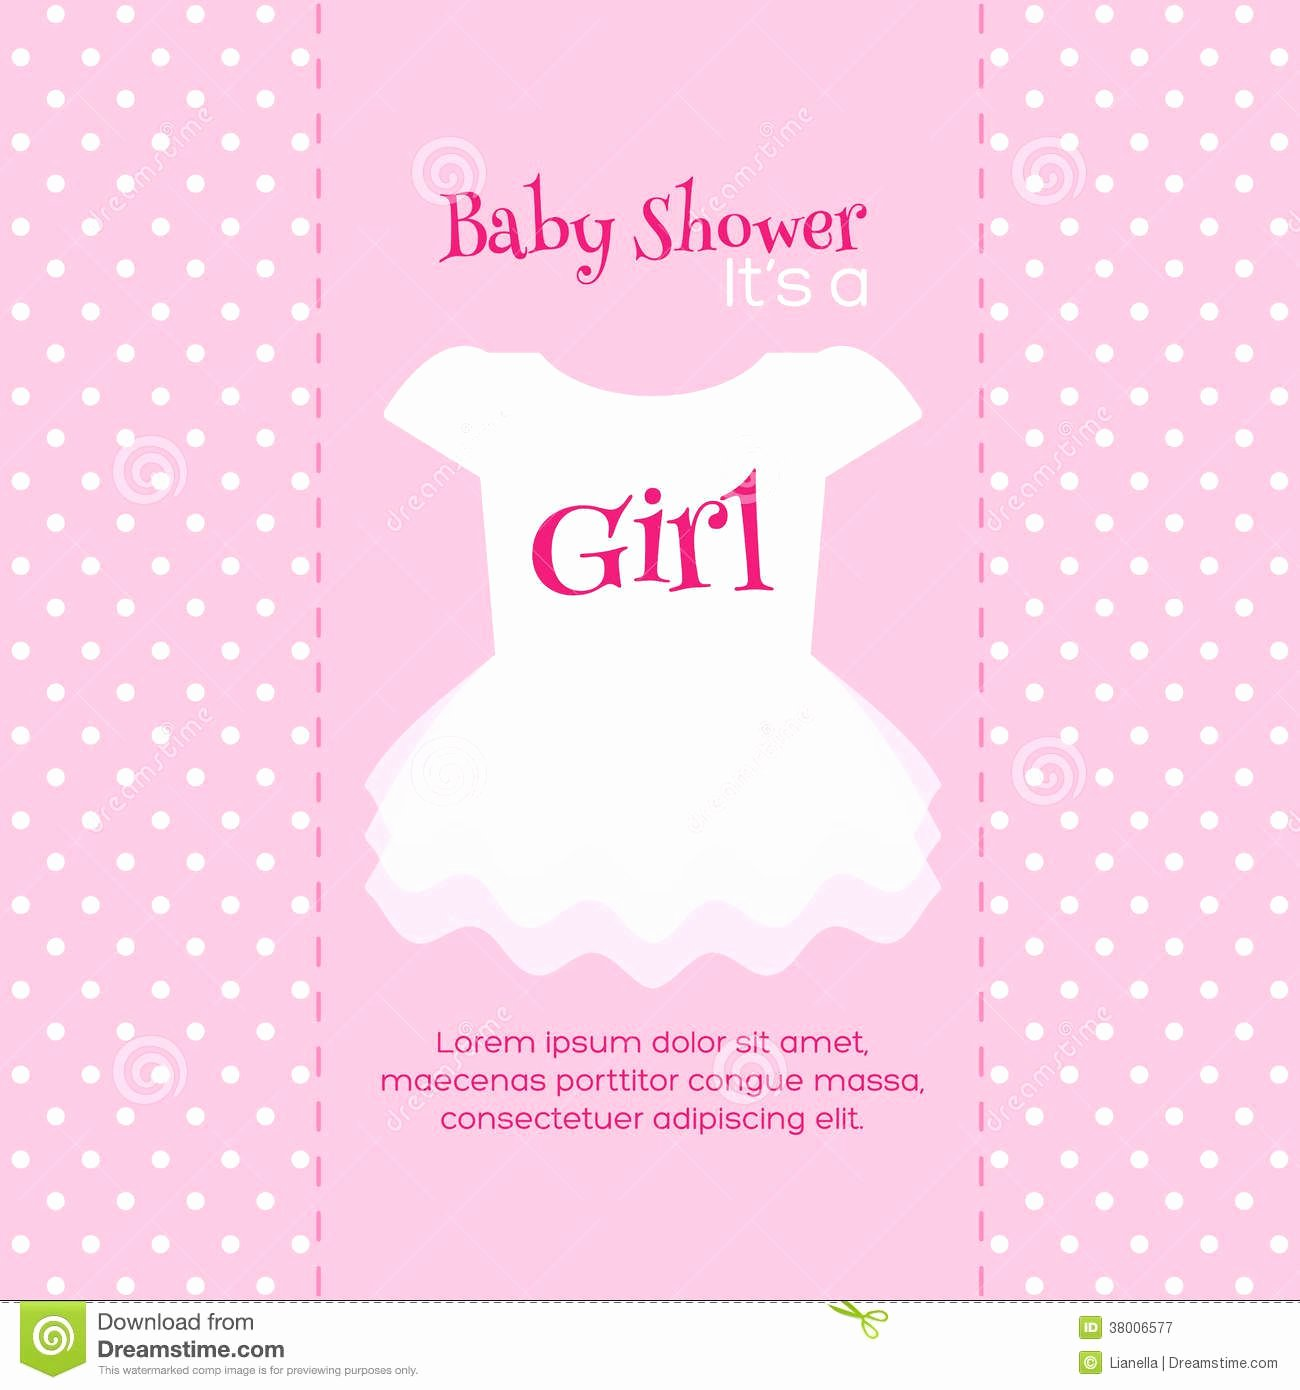 Baby Shower Card Template Beautiful Baby Shower Invitations Cards Designs Free Baby Shower